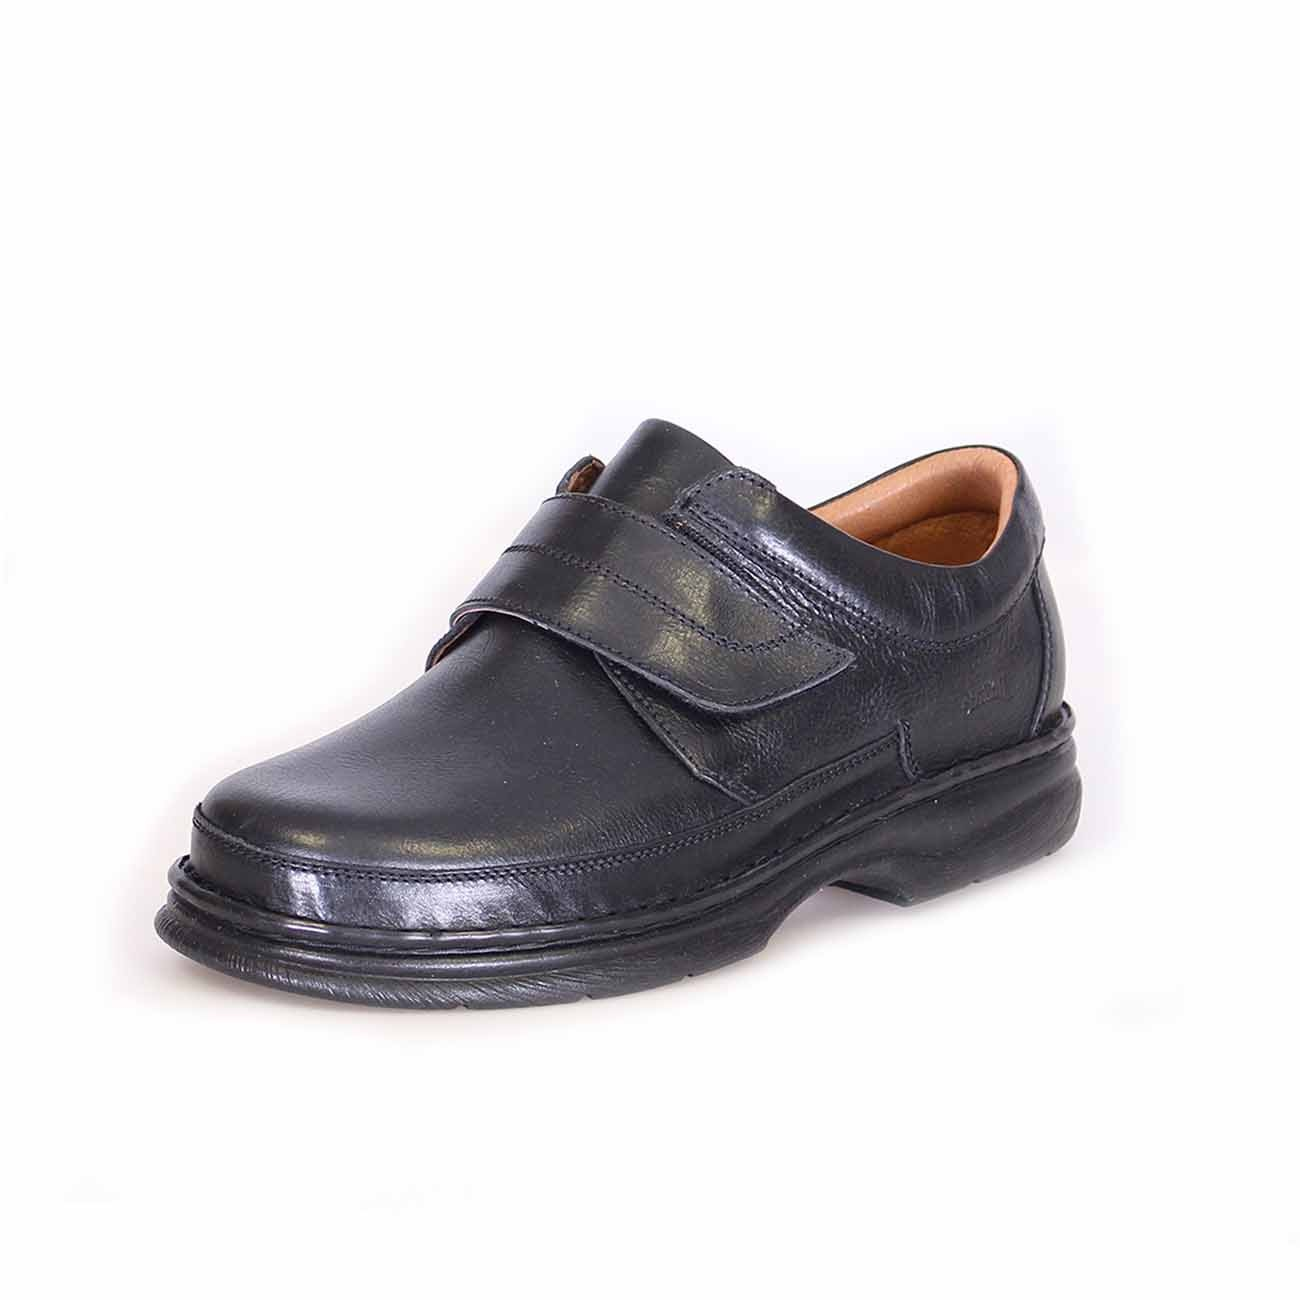 Todd Ultra Wide Shoe and men's wider fit shoes